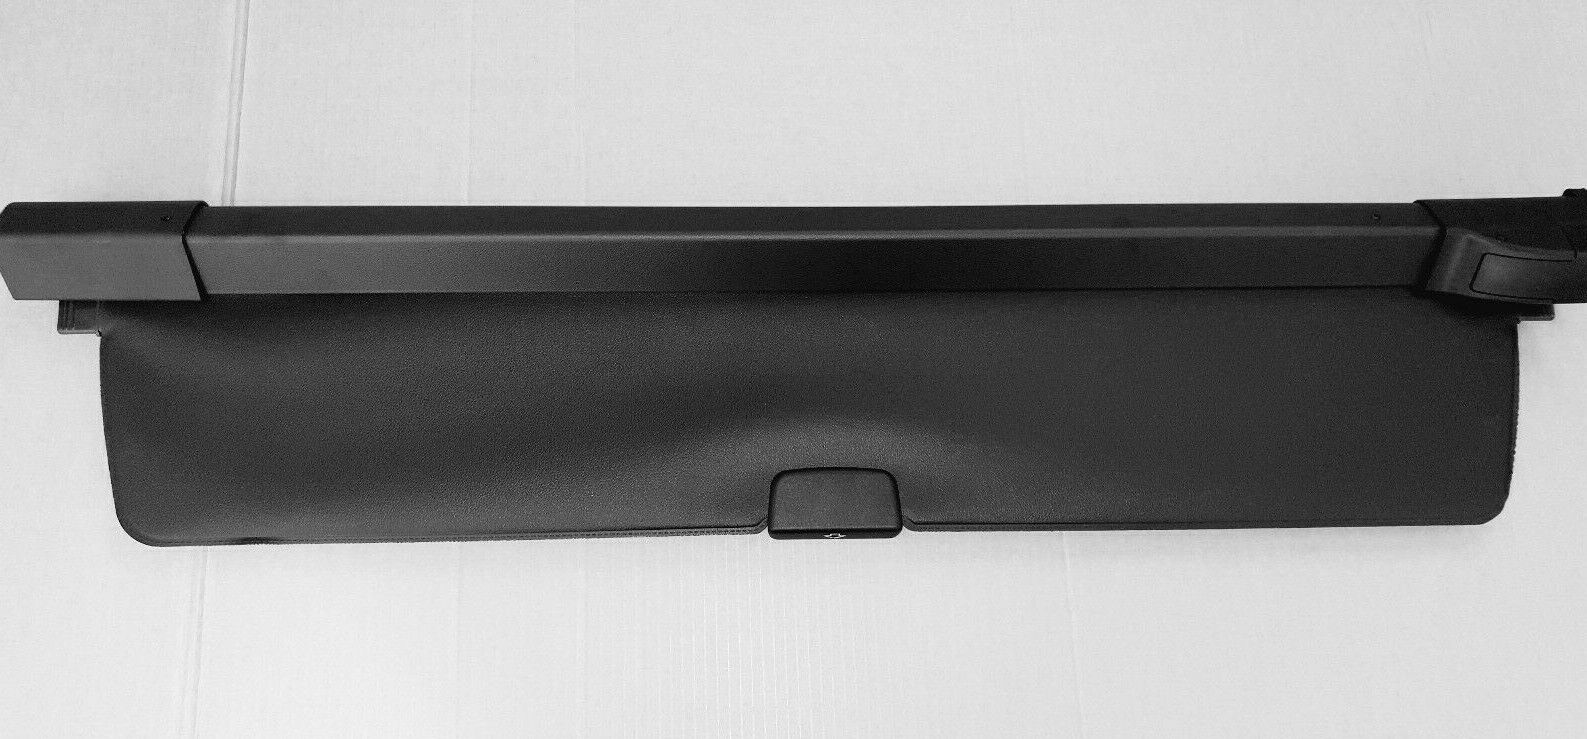 Vauxhall Insignia A Estate (2009-) Rear Boot Cover Blind New OE Part 13278414